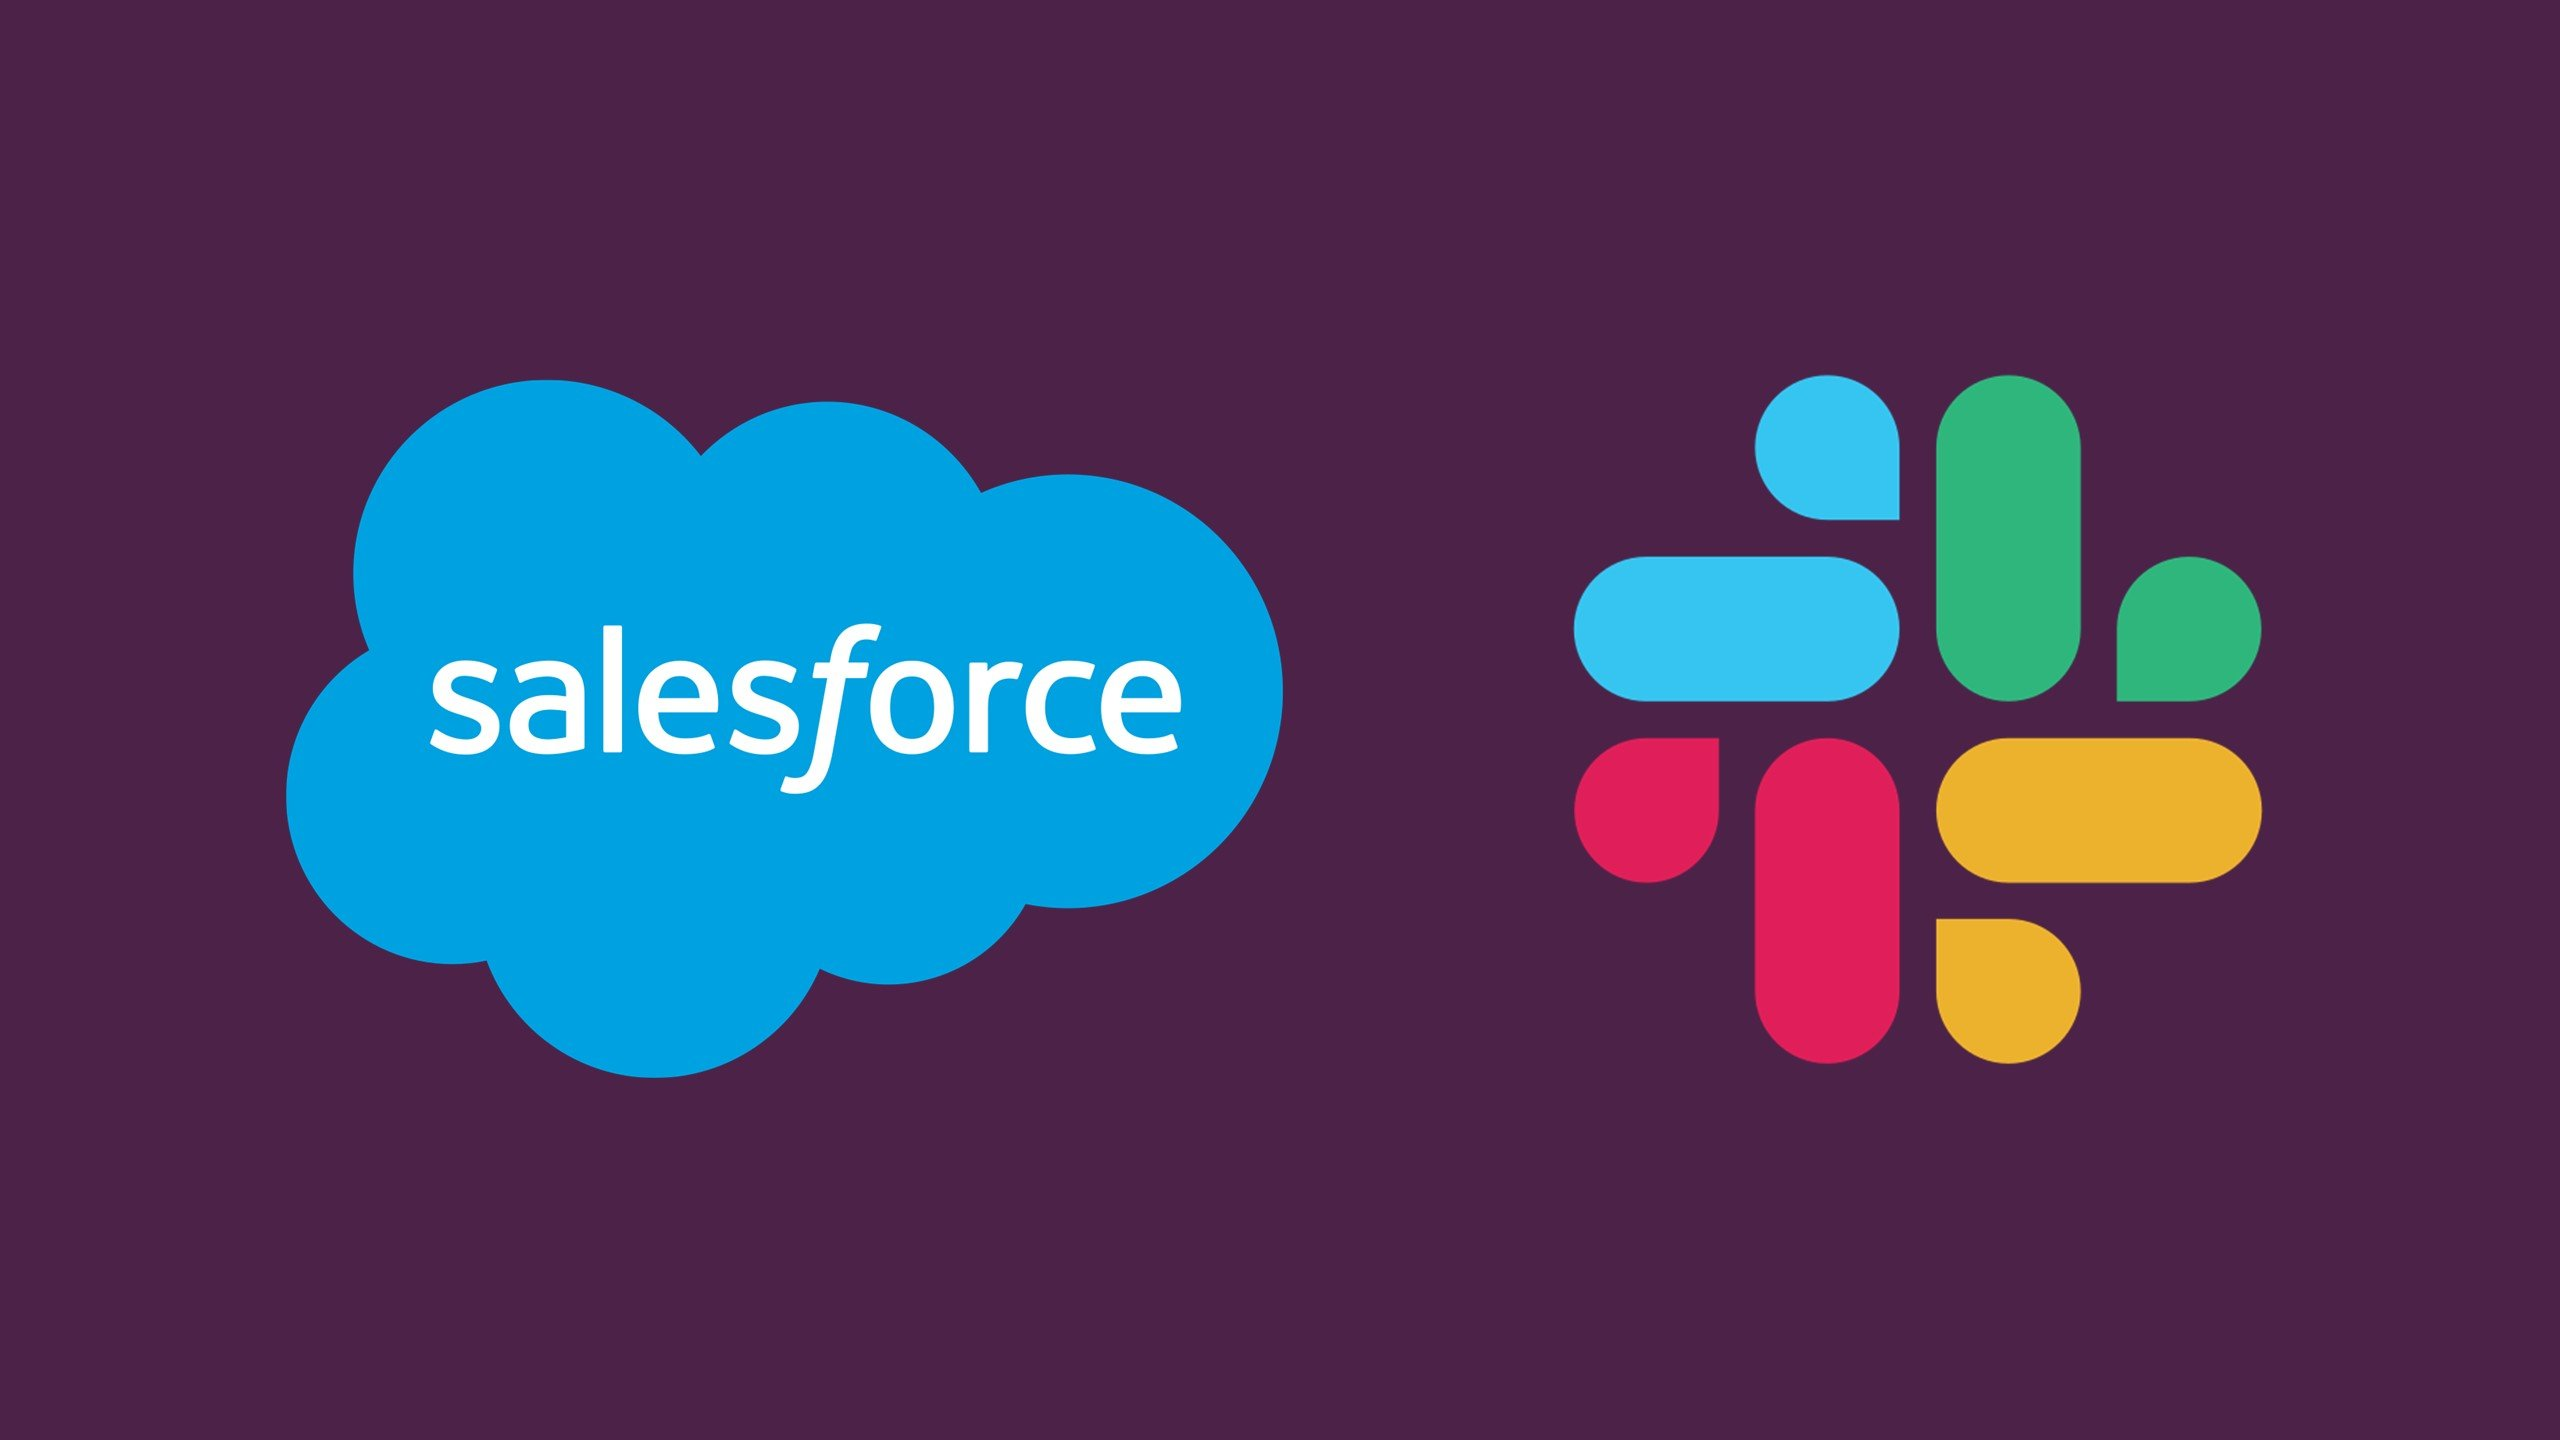 slack-salesforce-deal-logos